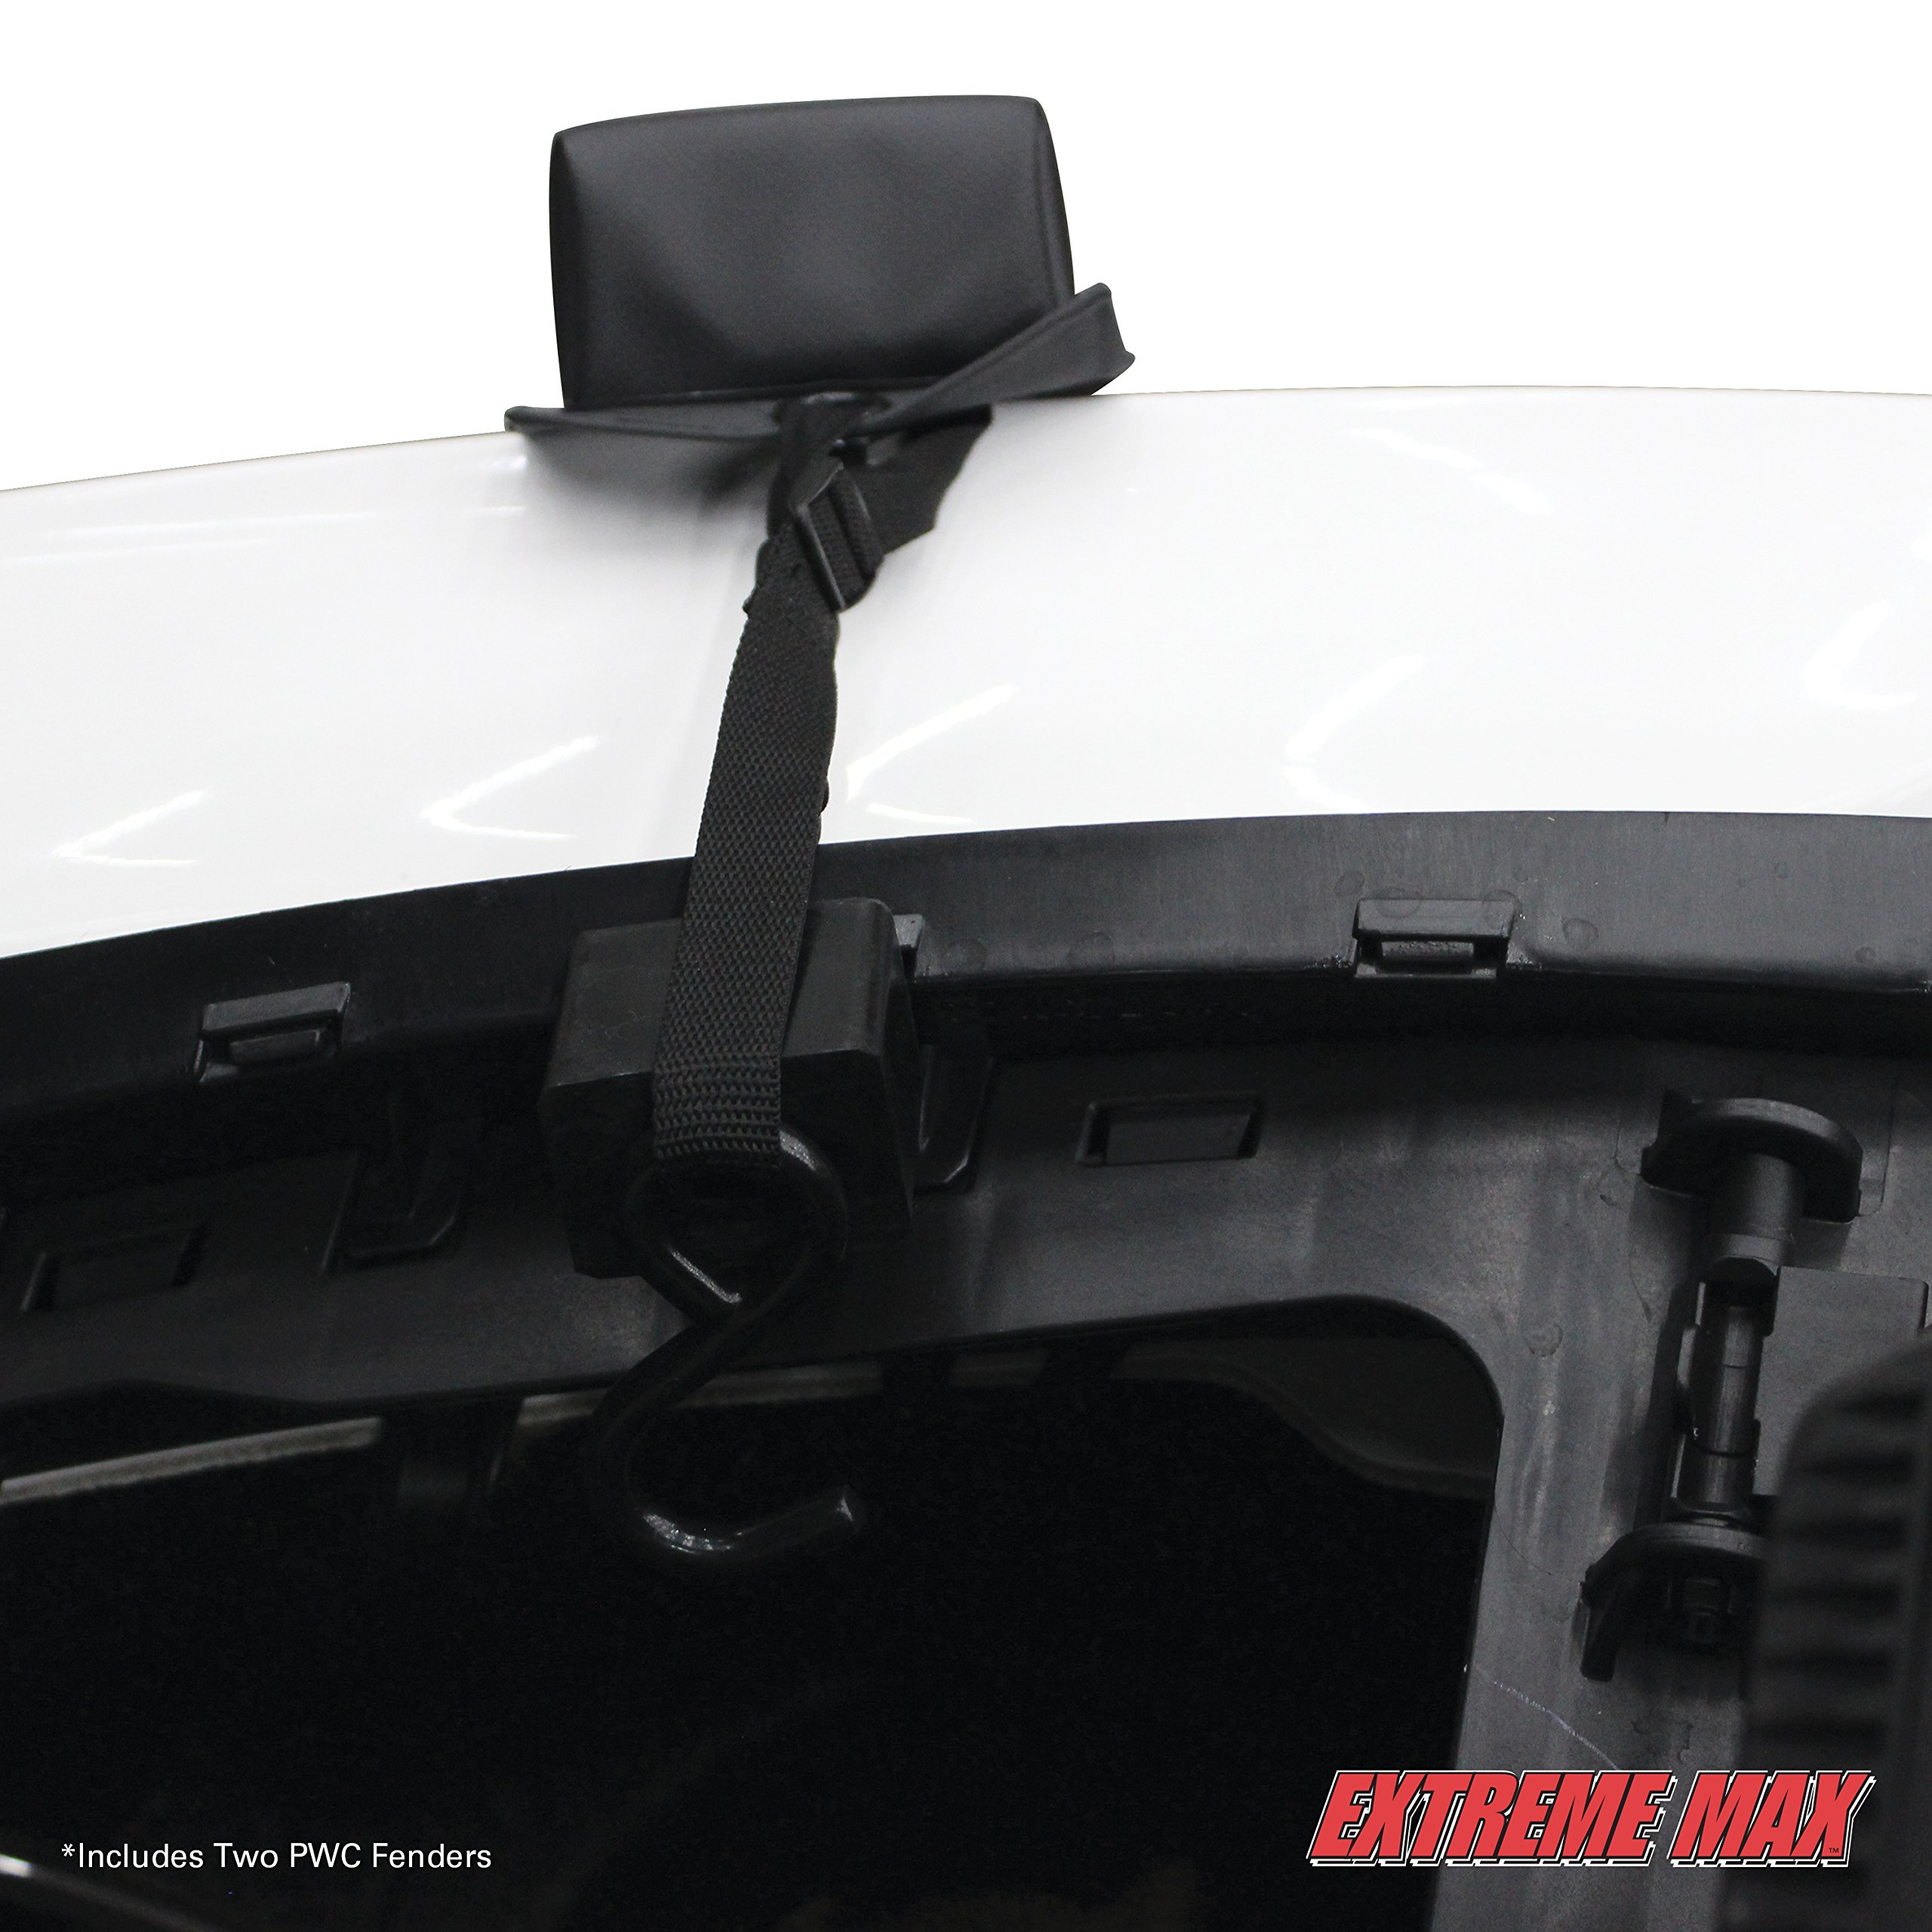 Extreme Max 3006.7270 BoatTector PWC Contour Fender Value Pack by Extreme Max (Image #5)